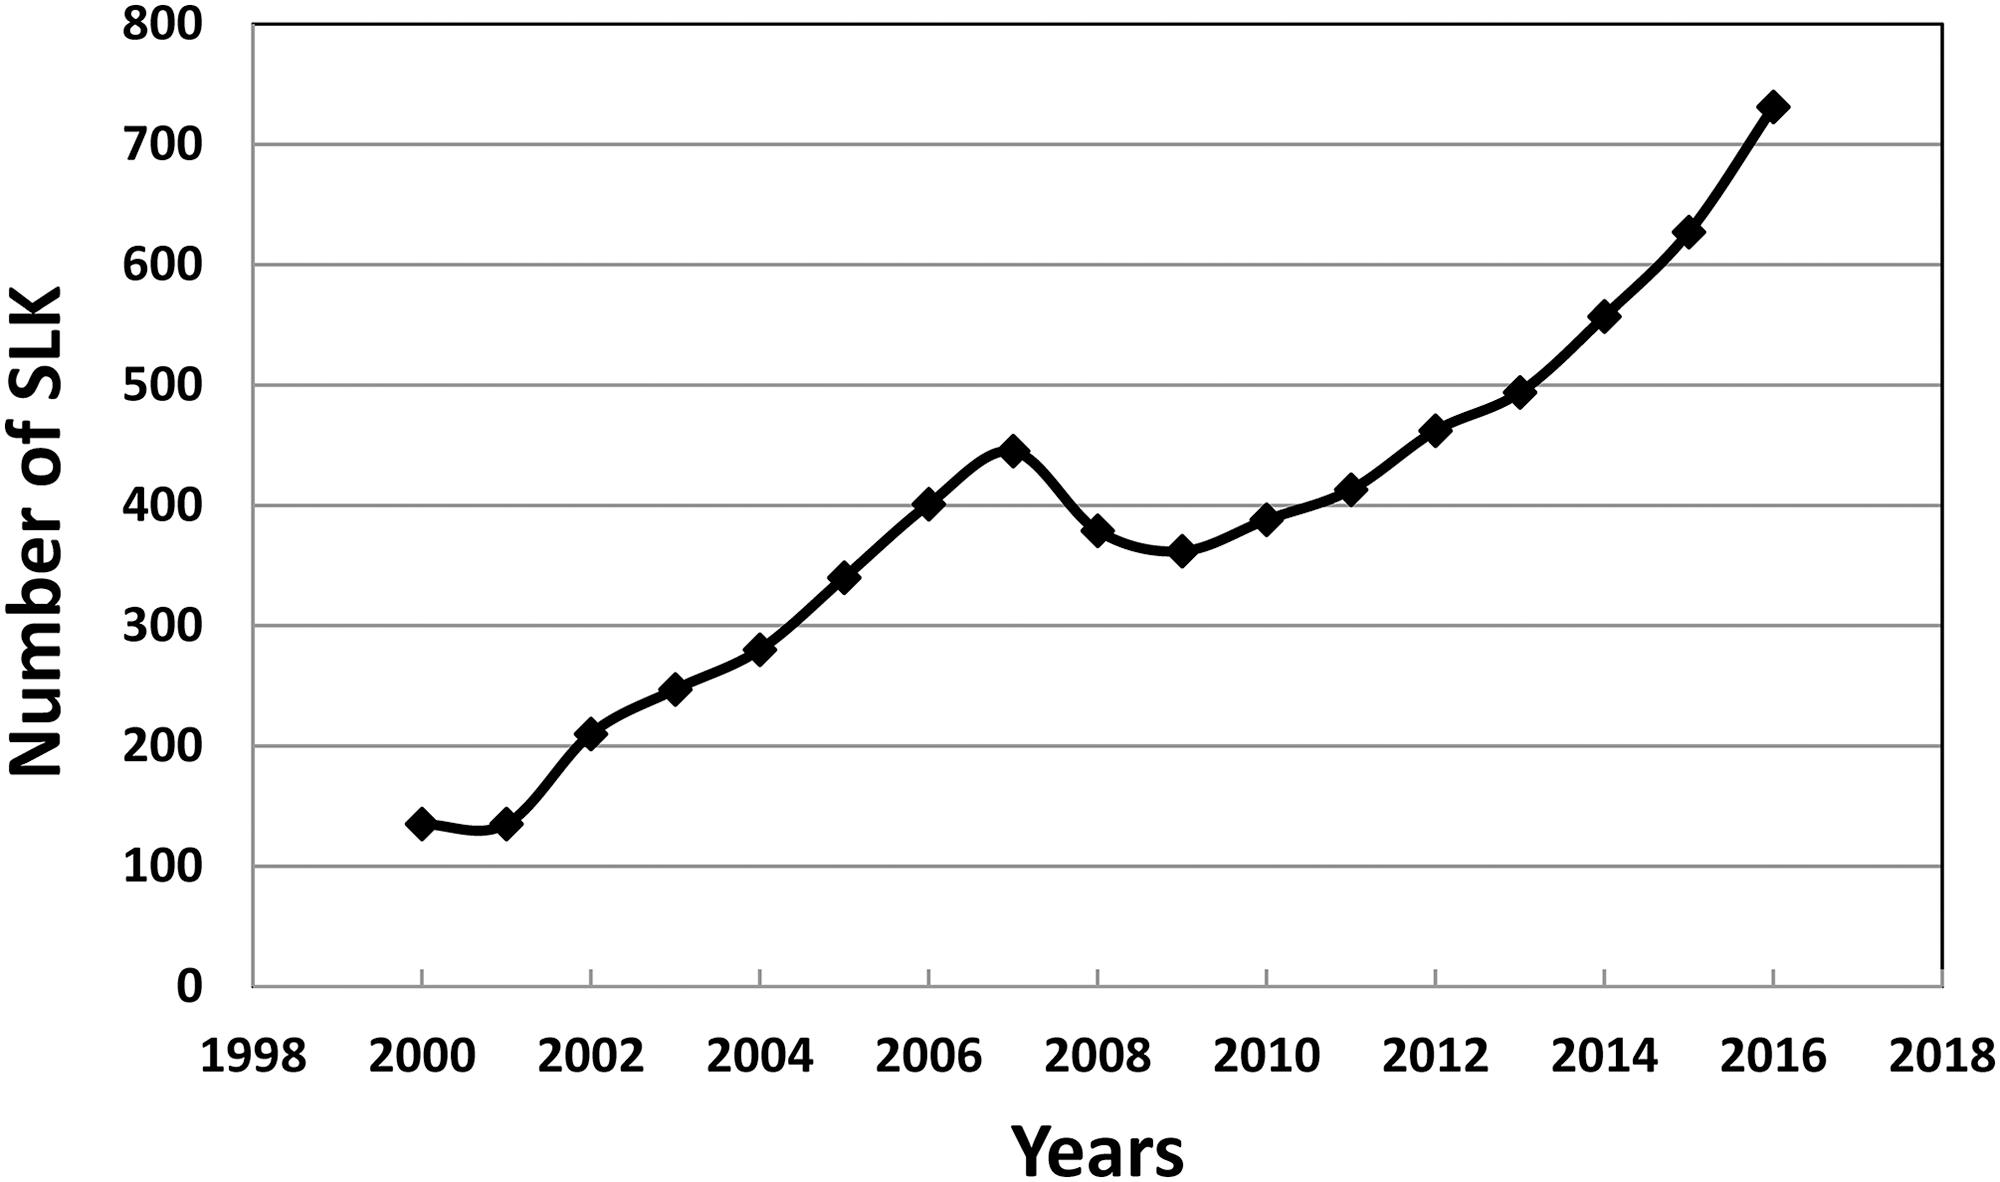 SLK transplantation by year in the USA.